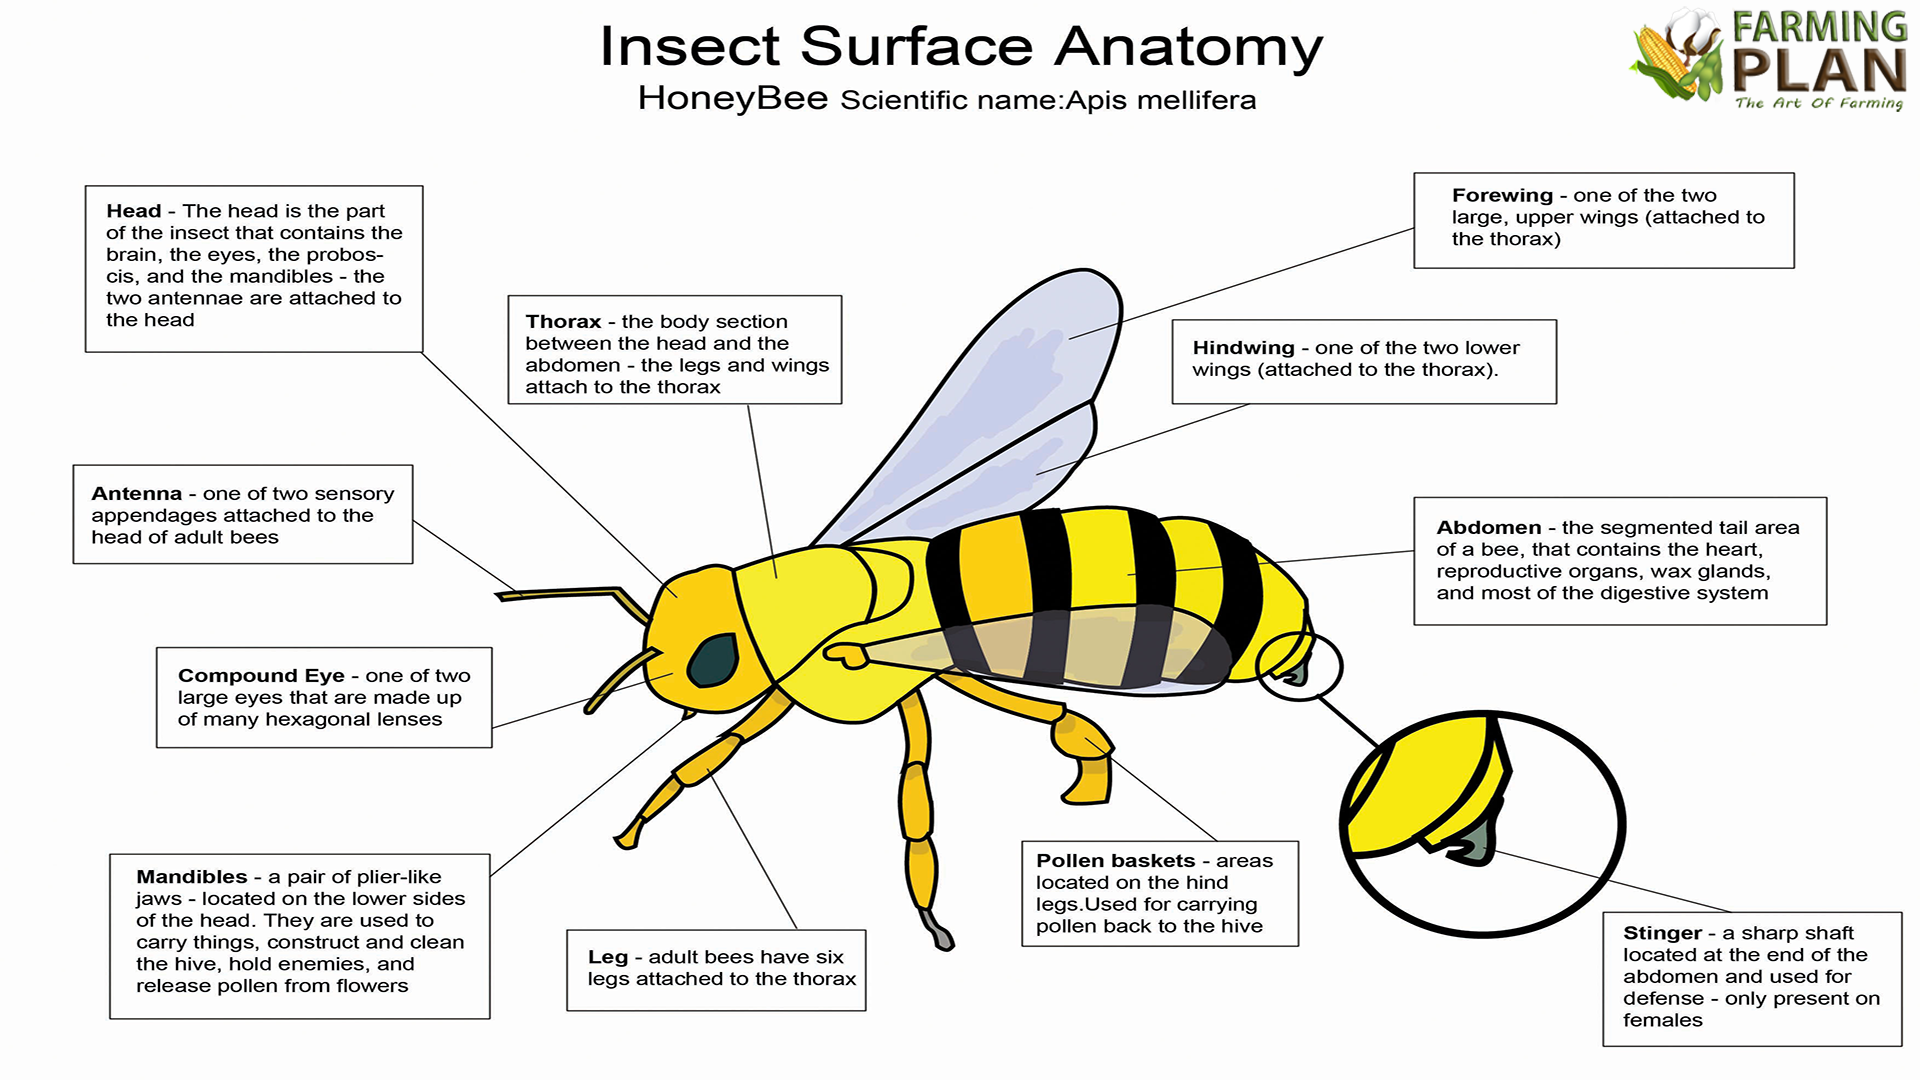 hight resolution of the external and internal anatomy of the honey bee corresponds png 1920x1080 honey bee body parts